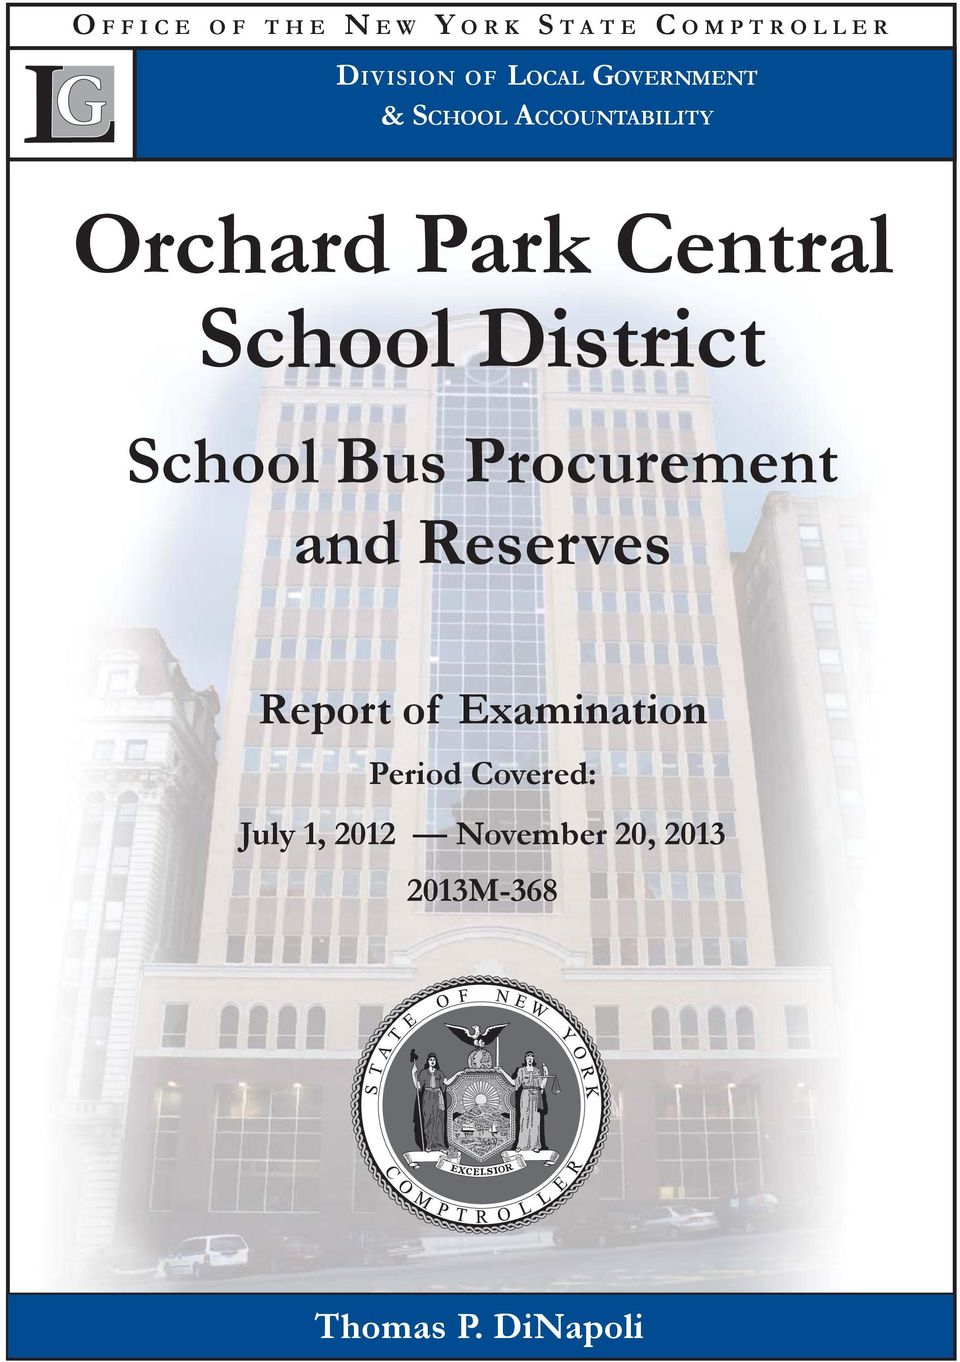 District School Bus Procurement and Reserves Report of Examination